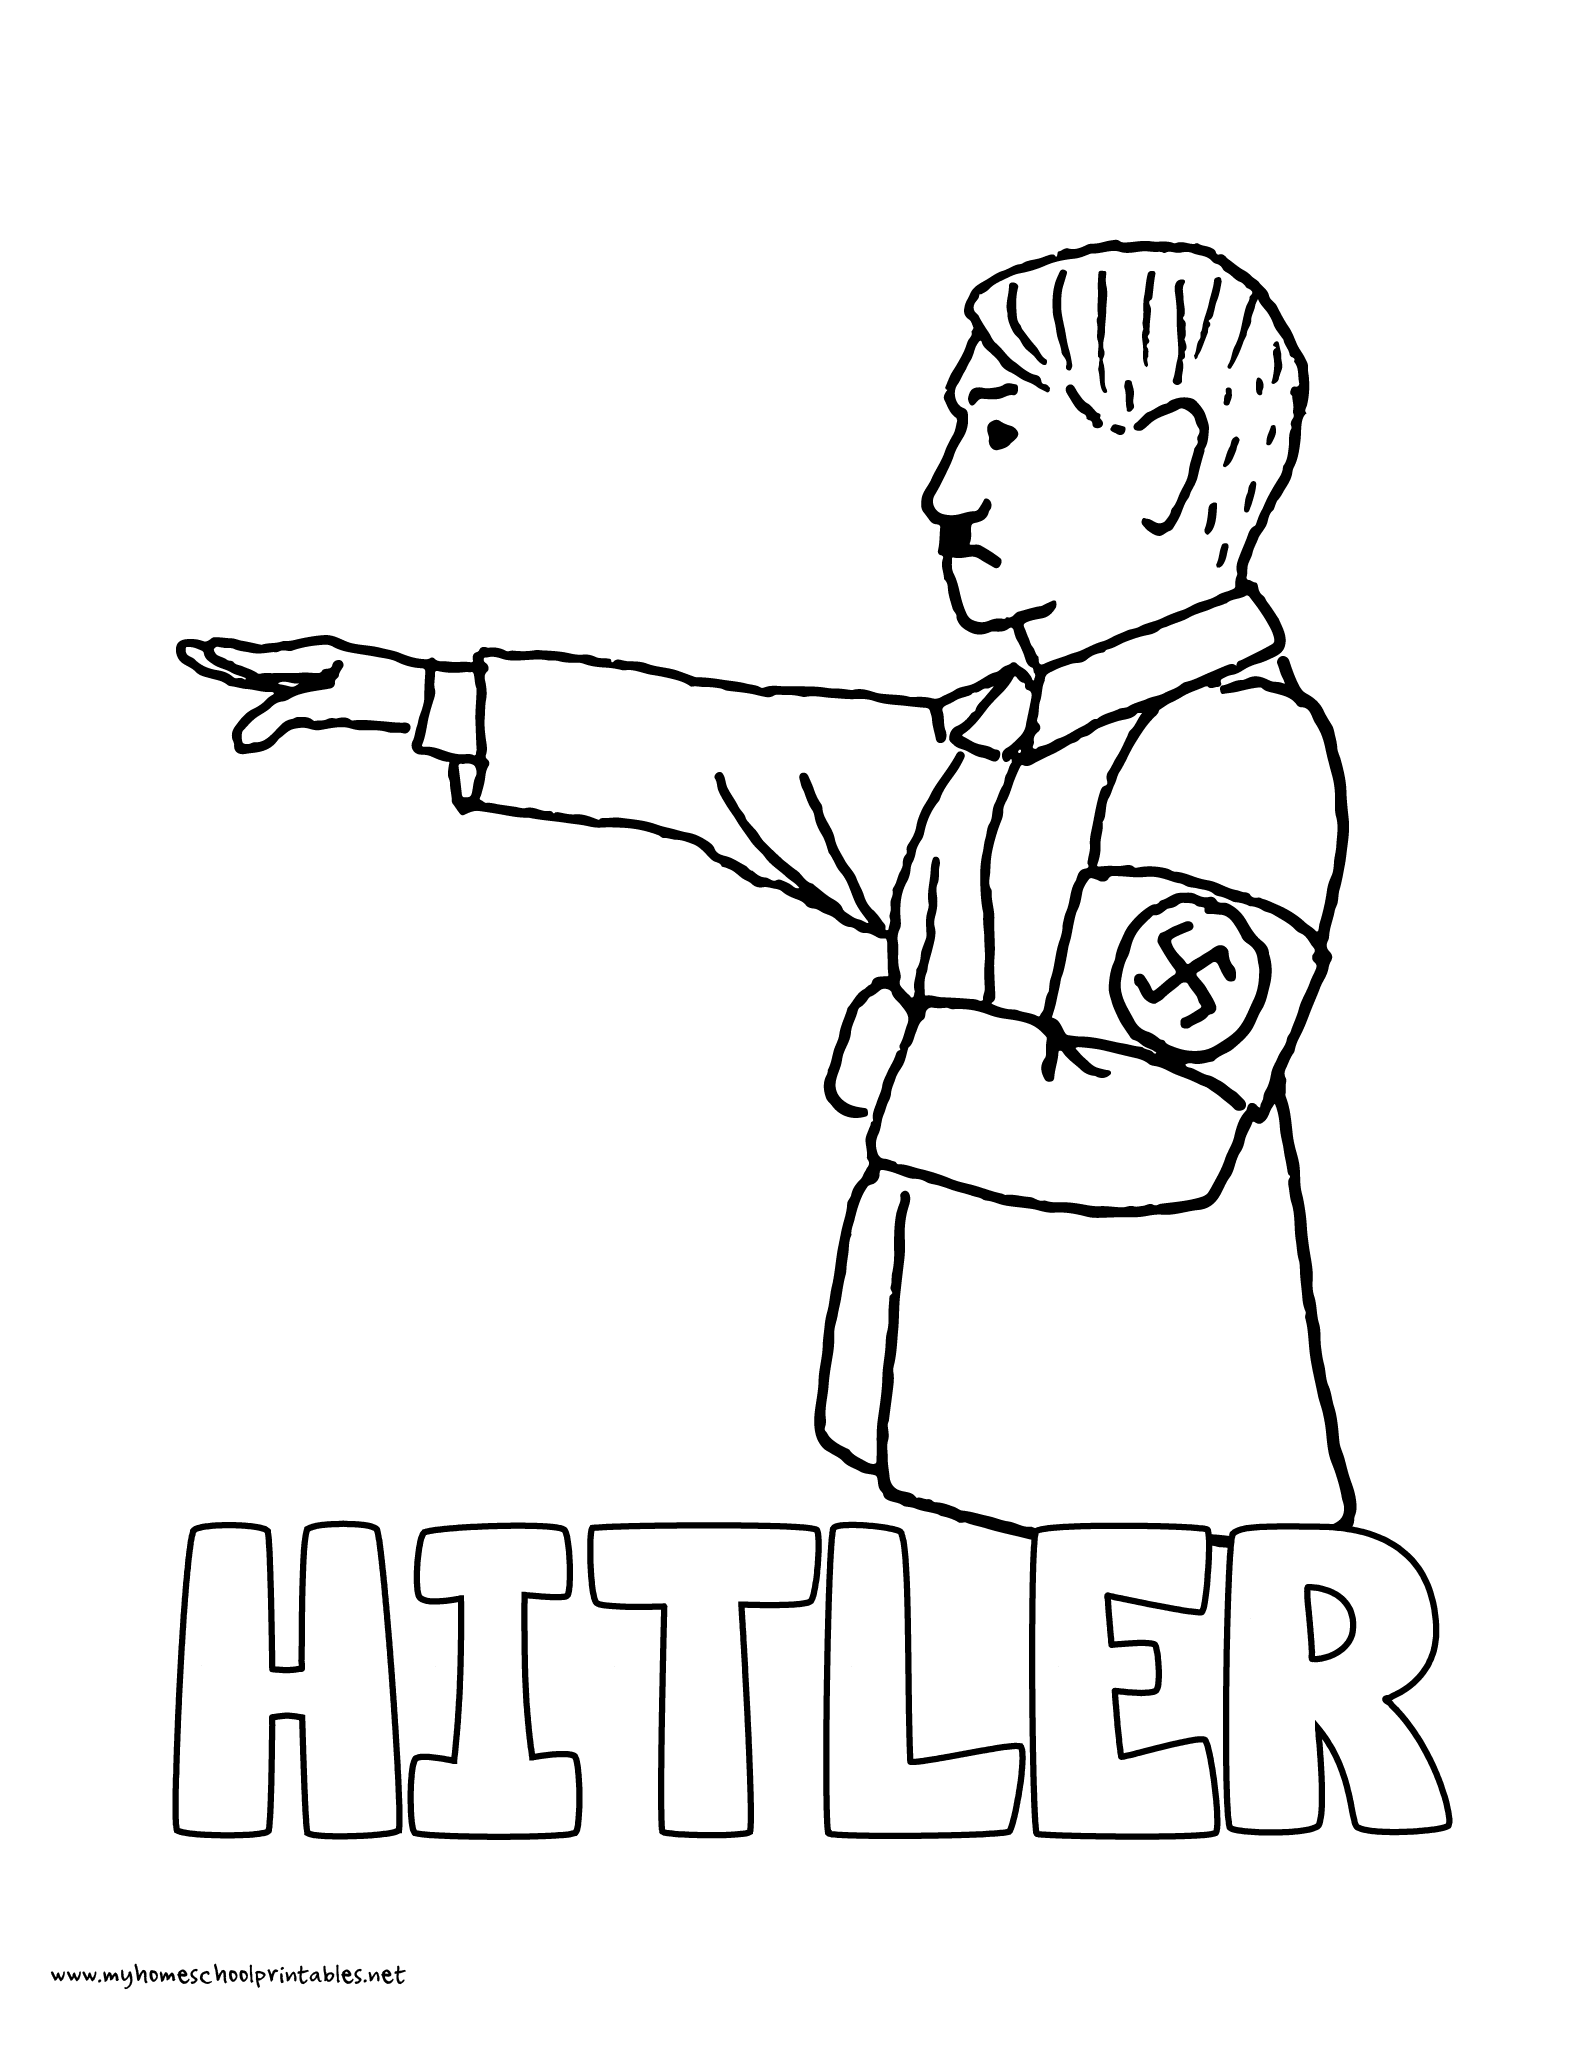 nazi coloring pages - photo#7